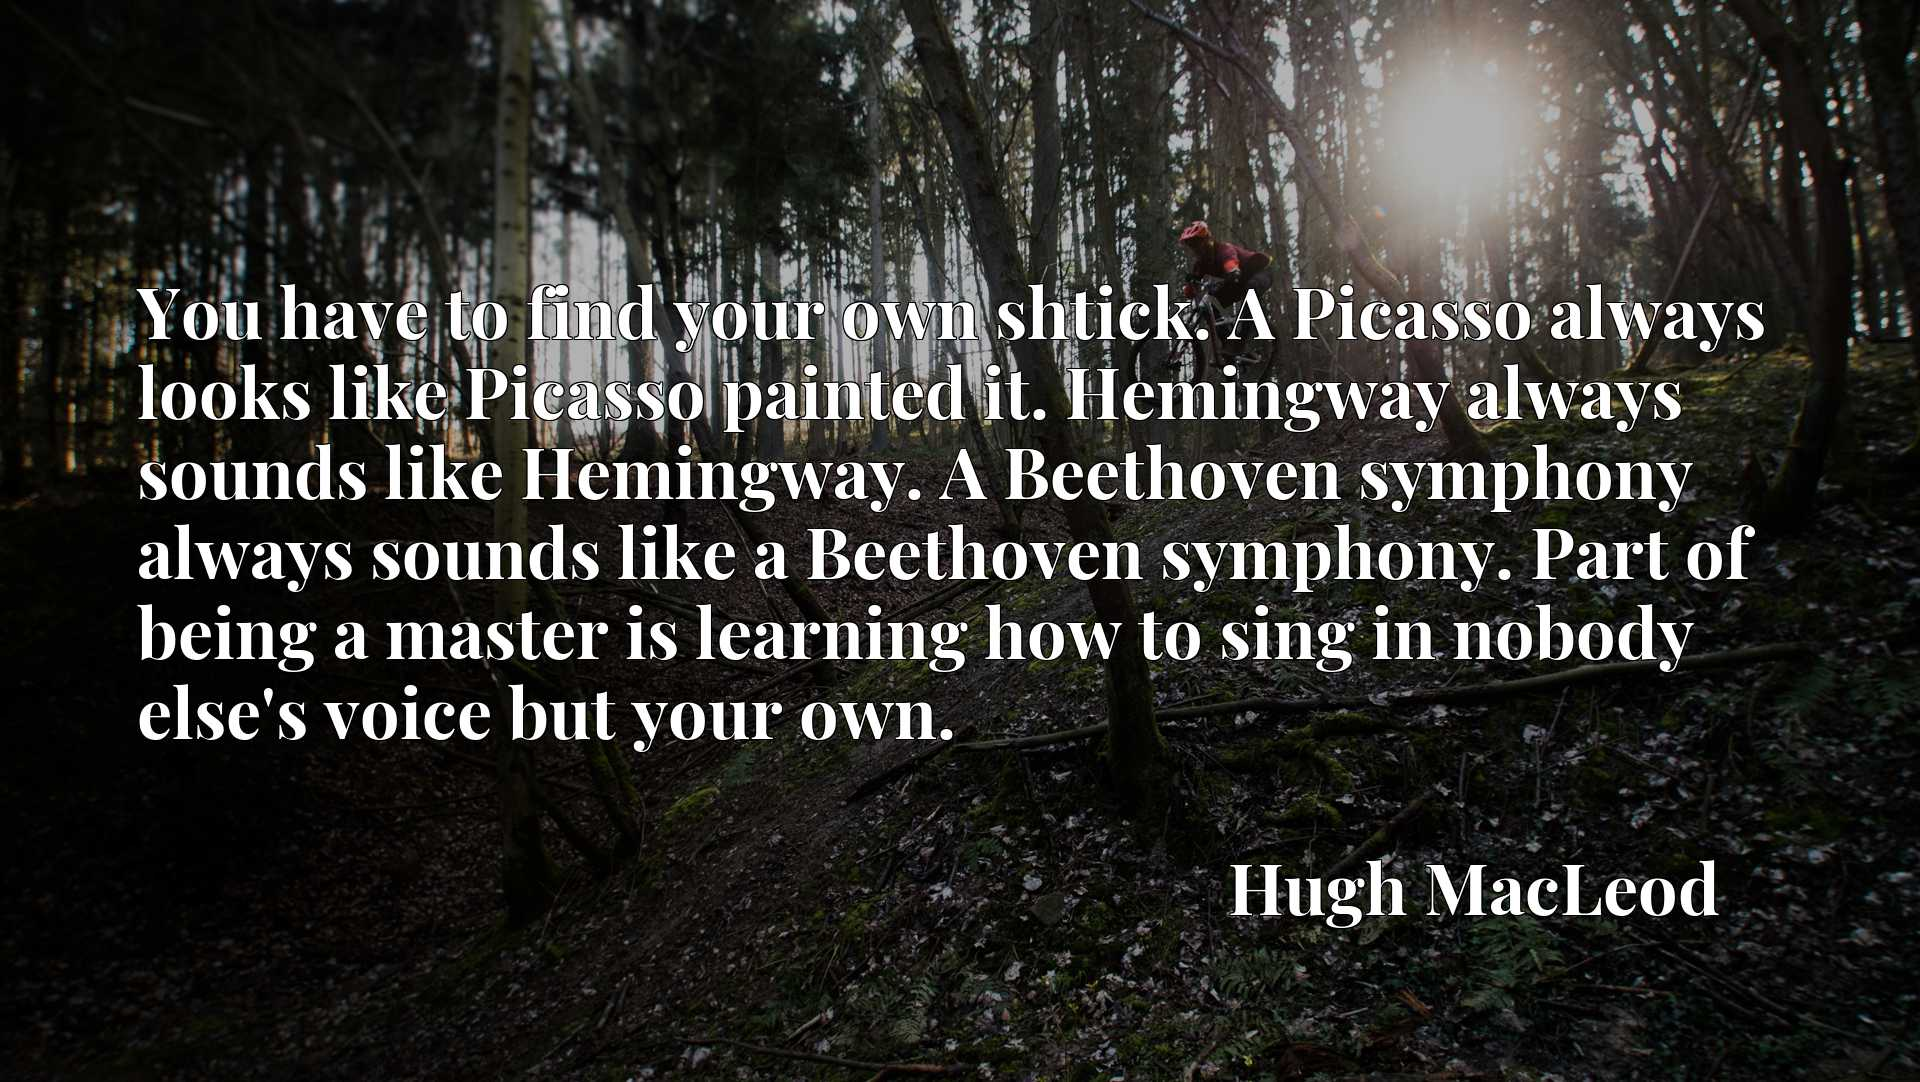 You have to find your own shtick. A Picasso always looks like Picasso painted it. Hemingway always sounds like Hemingway. A Beethoven symphony always sounds like a Beethoven symphony. Part of being a master is learning how to sing in nobody else's voice but your own.